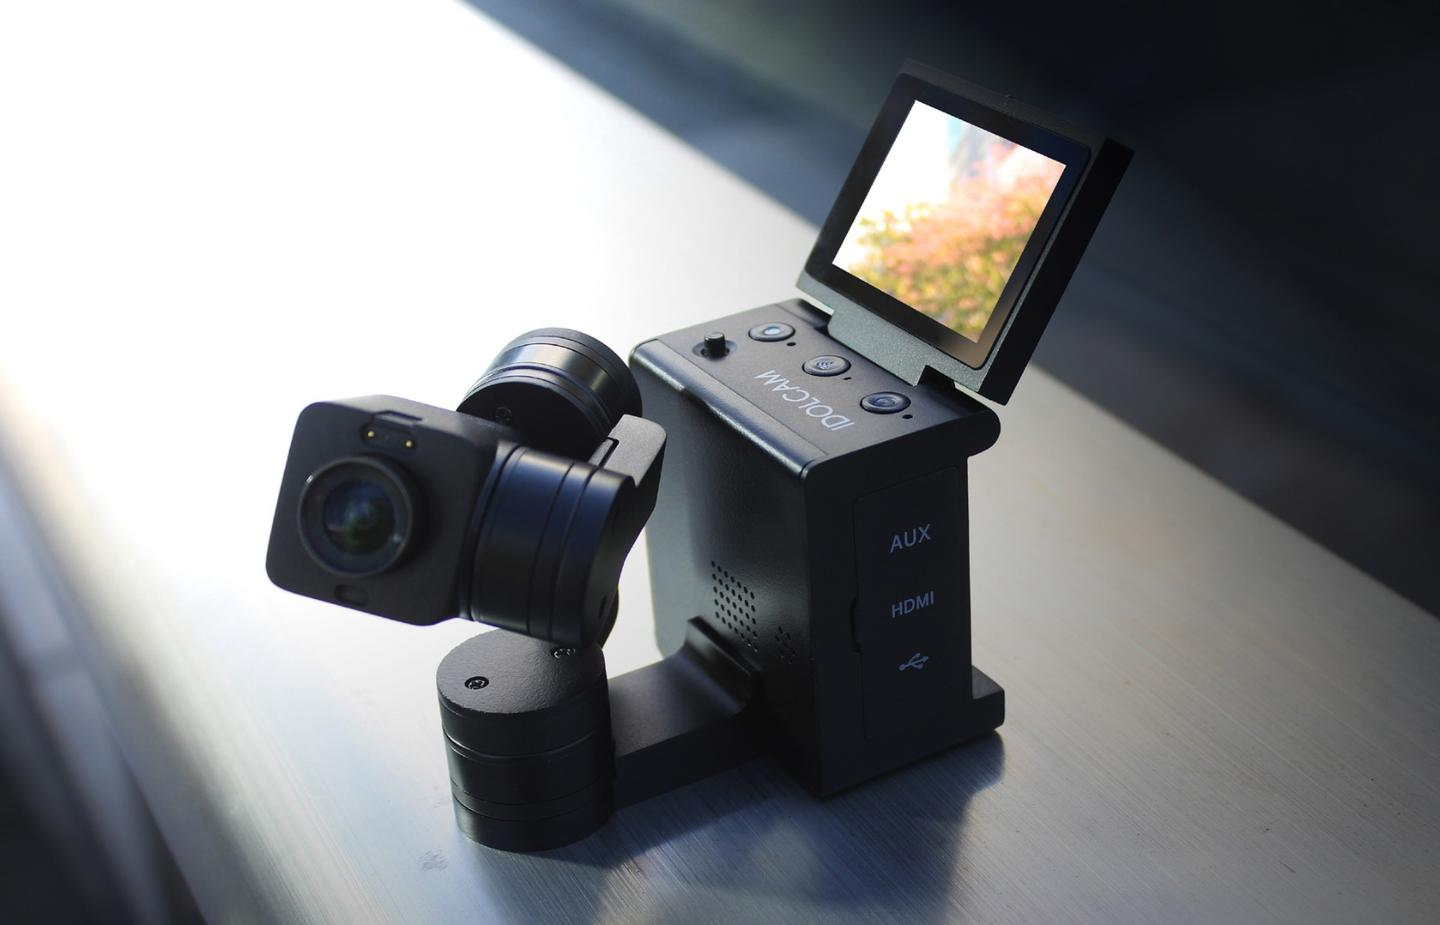 The Idolcam has a 180-degree flip-up touchscreen